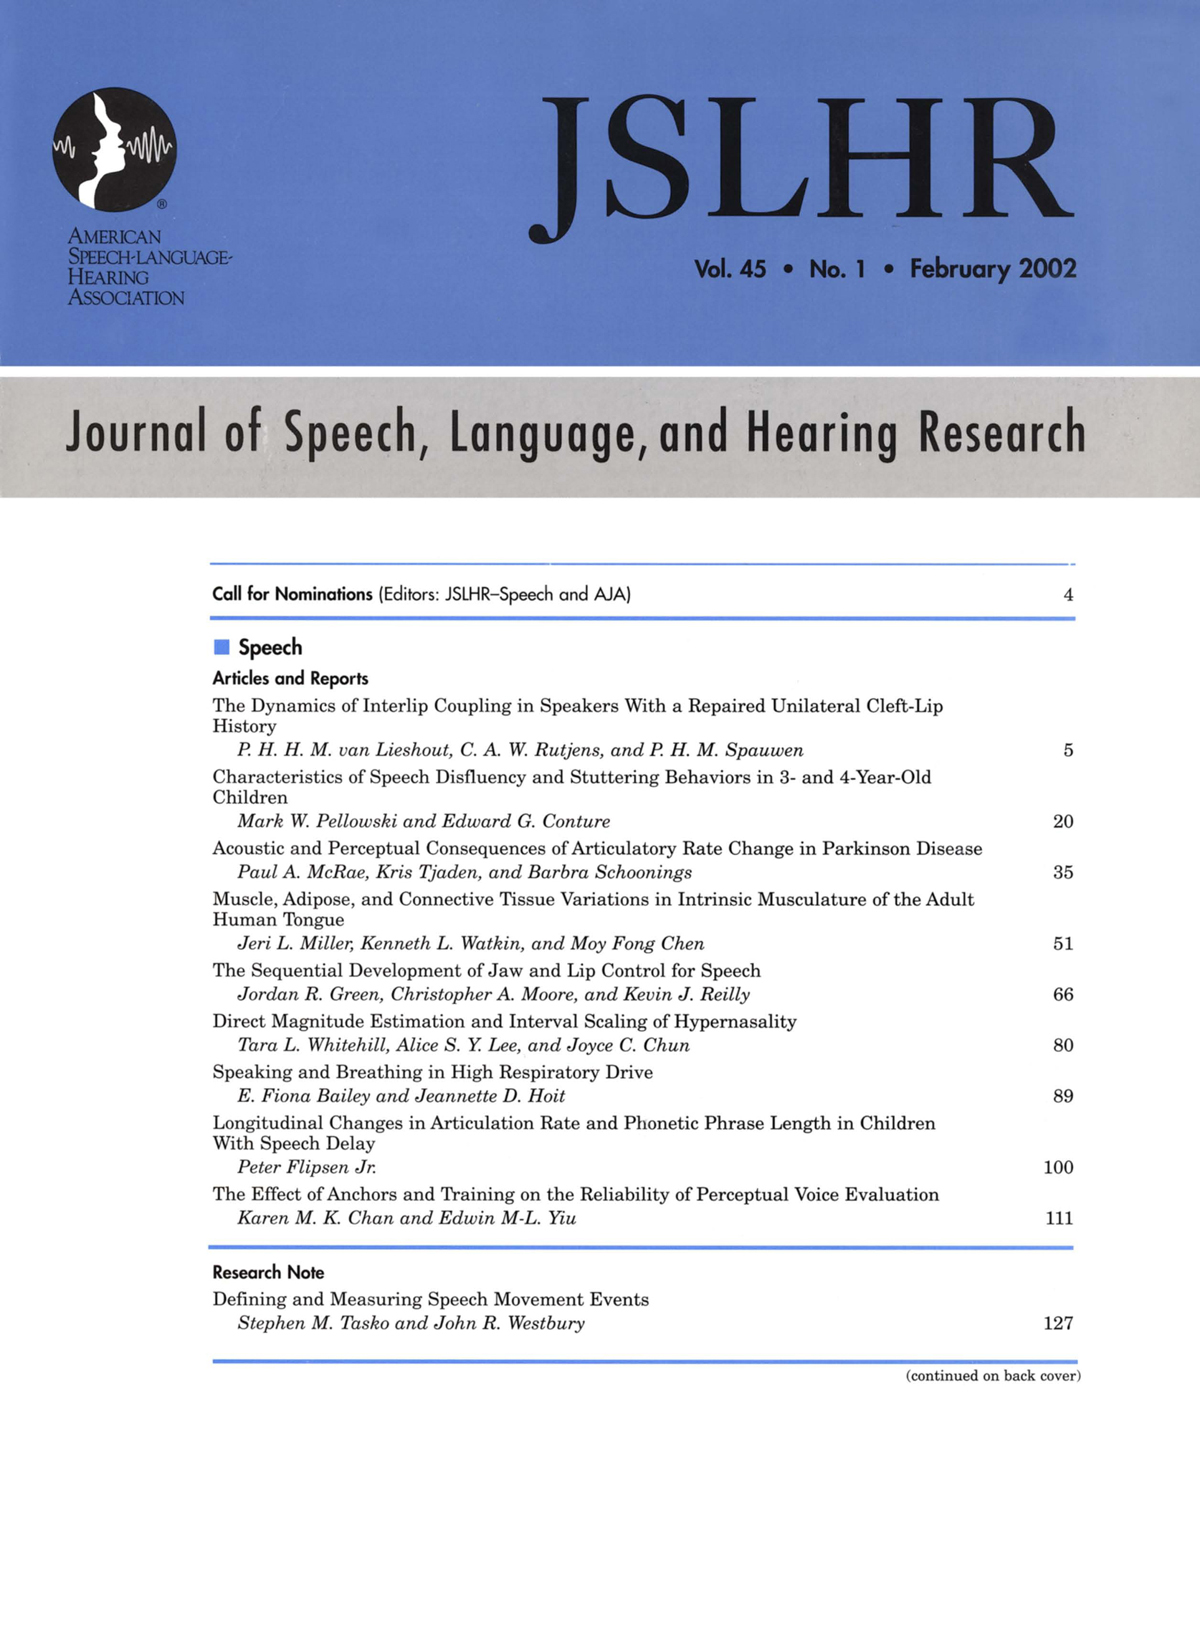 The Dynamics of Interlip Coupling in Speakers With a